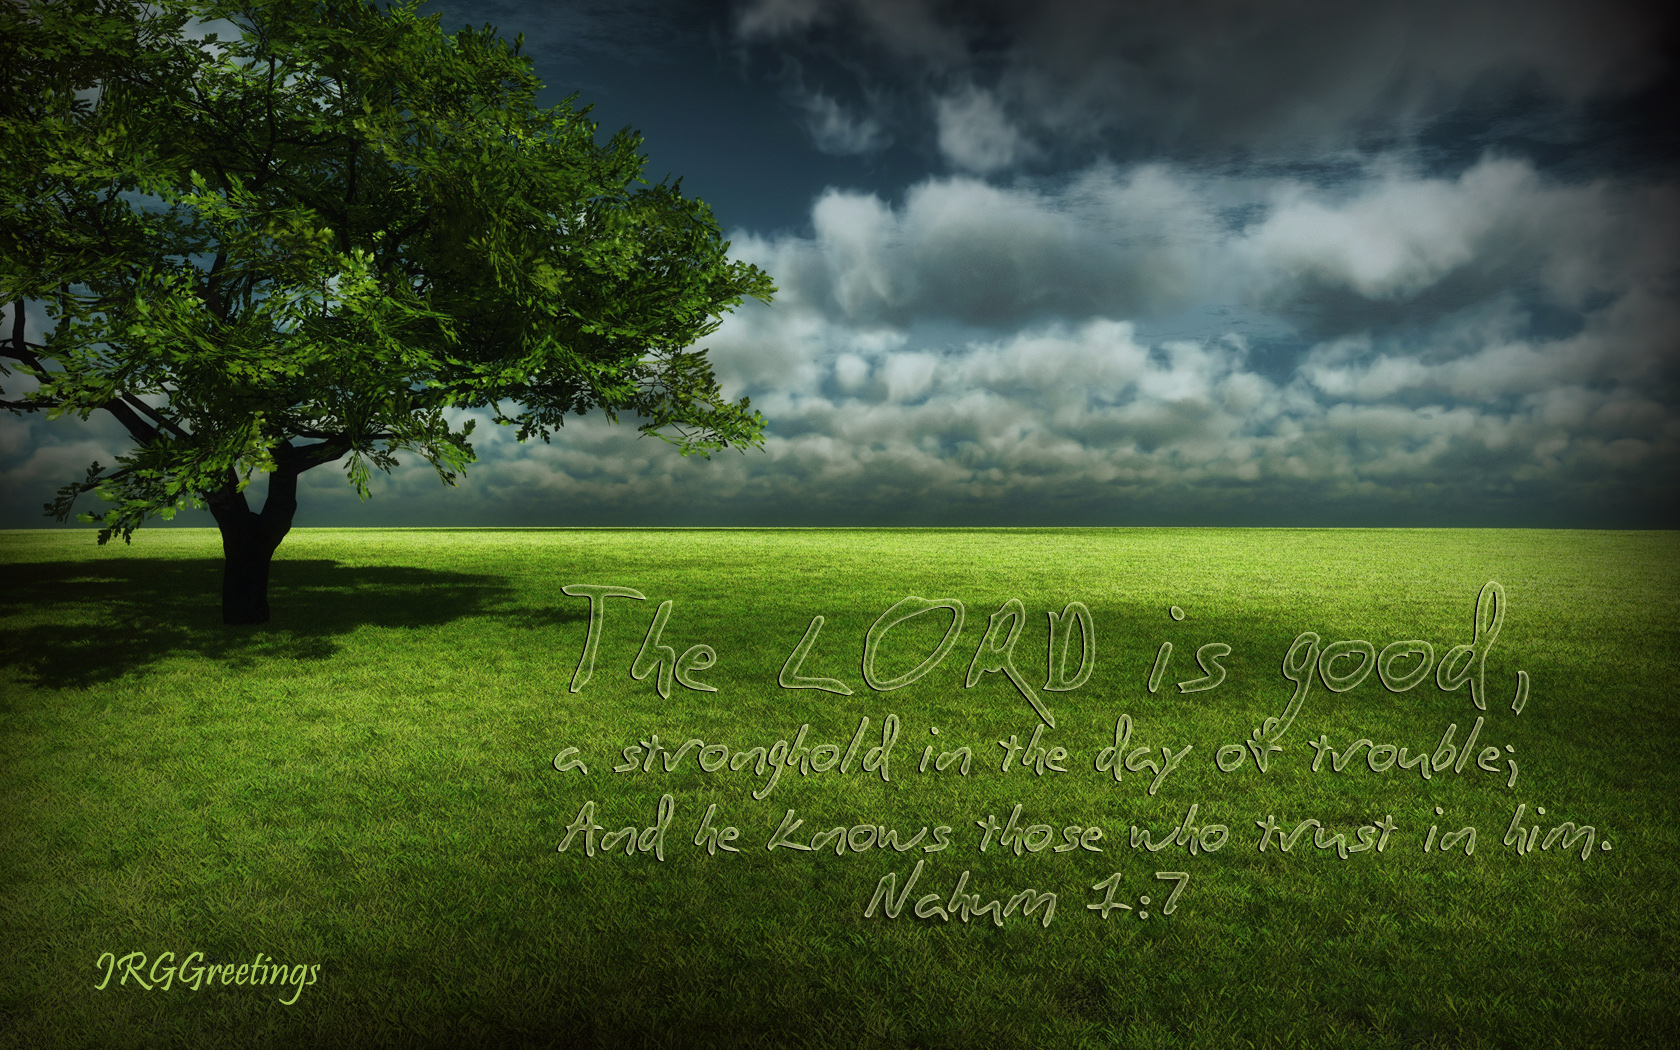 Hd wallpaper upload - The Lord Is Good Wallpaper Christian Wallpapers And Backgrounds